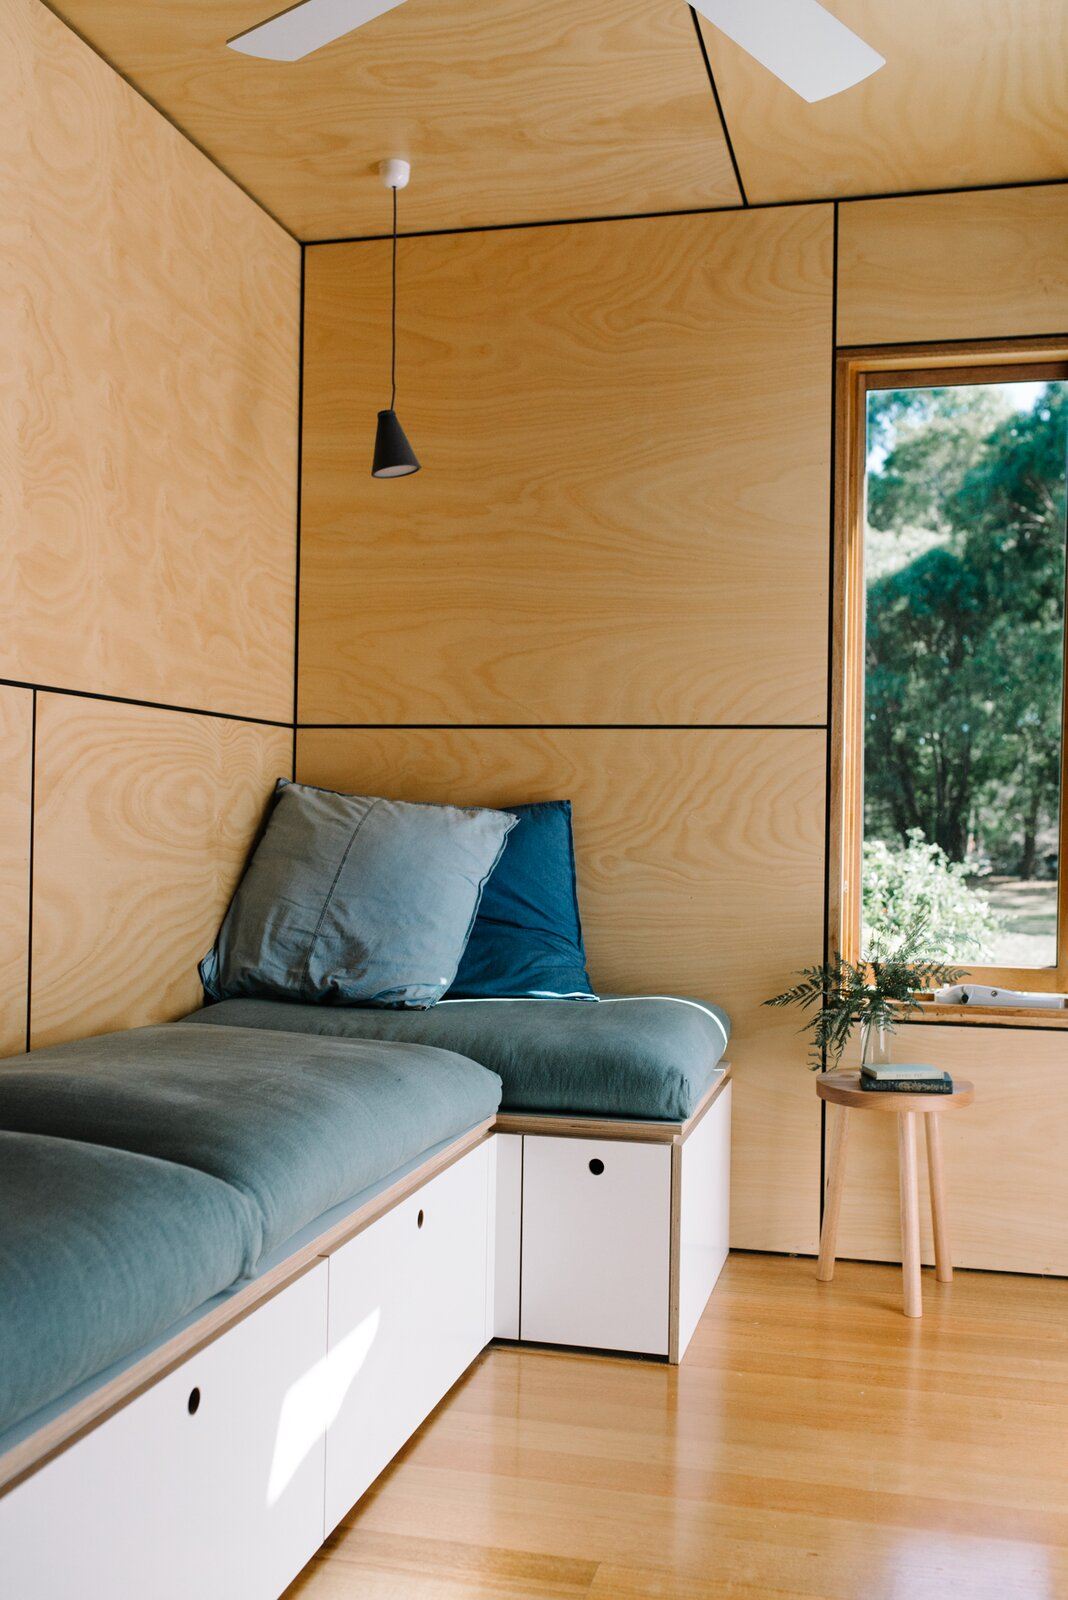 Wattle Bank shipping container tiny home built-in sofa with storage